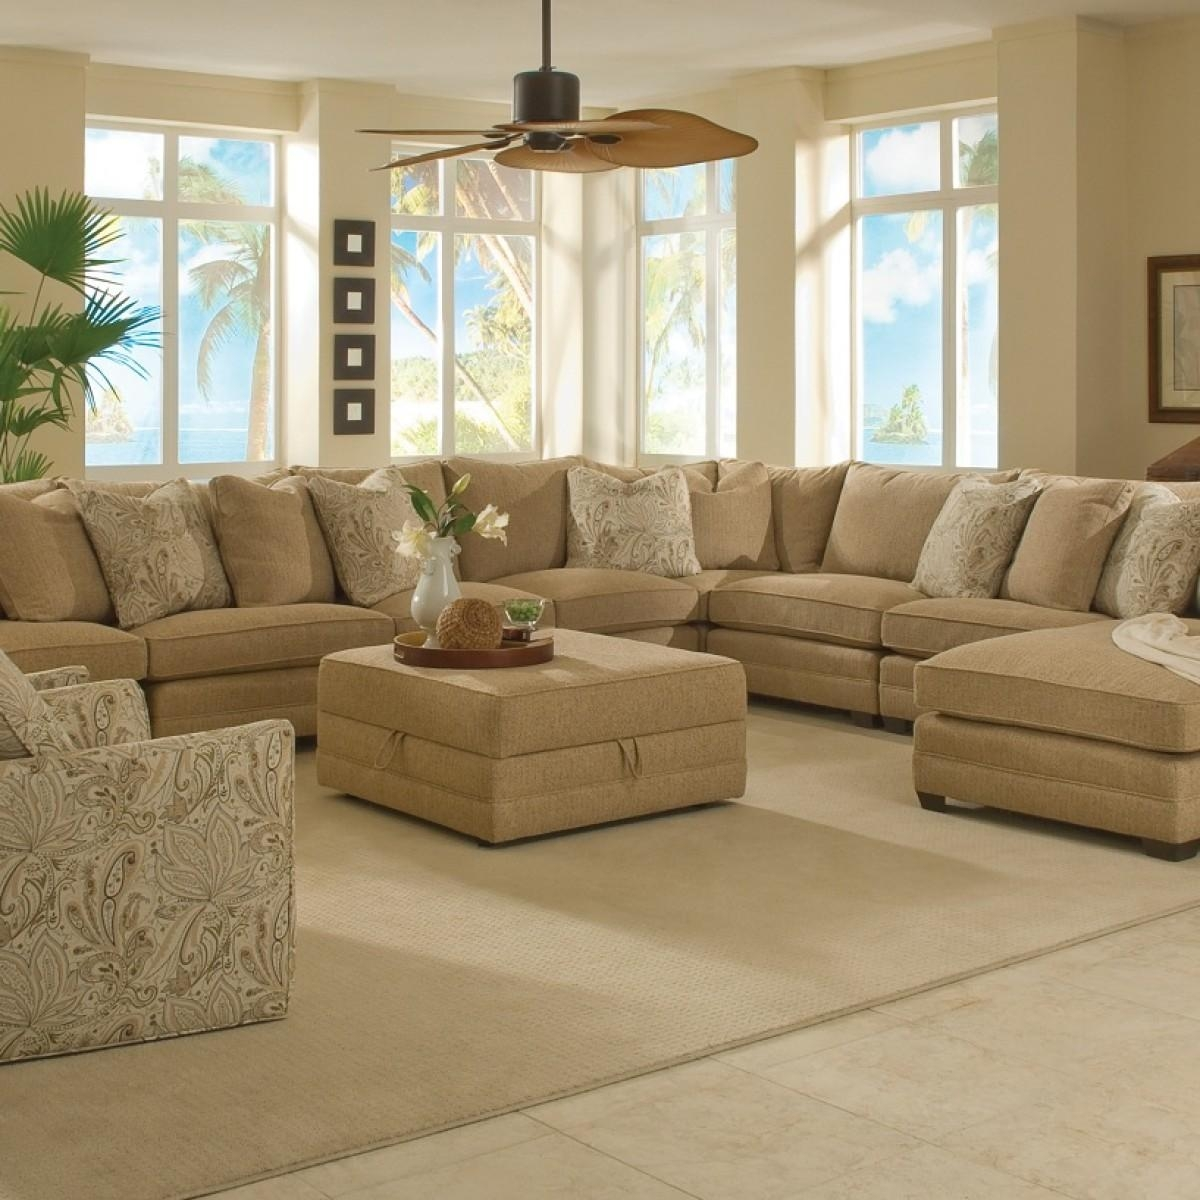 sectional sofa living room ideas 20 best large sofa sectionals sofa ideas 20367